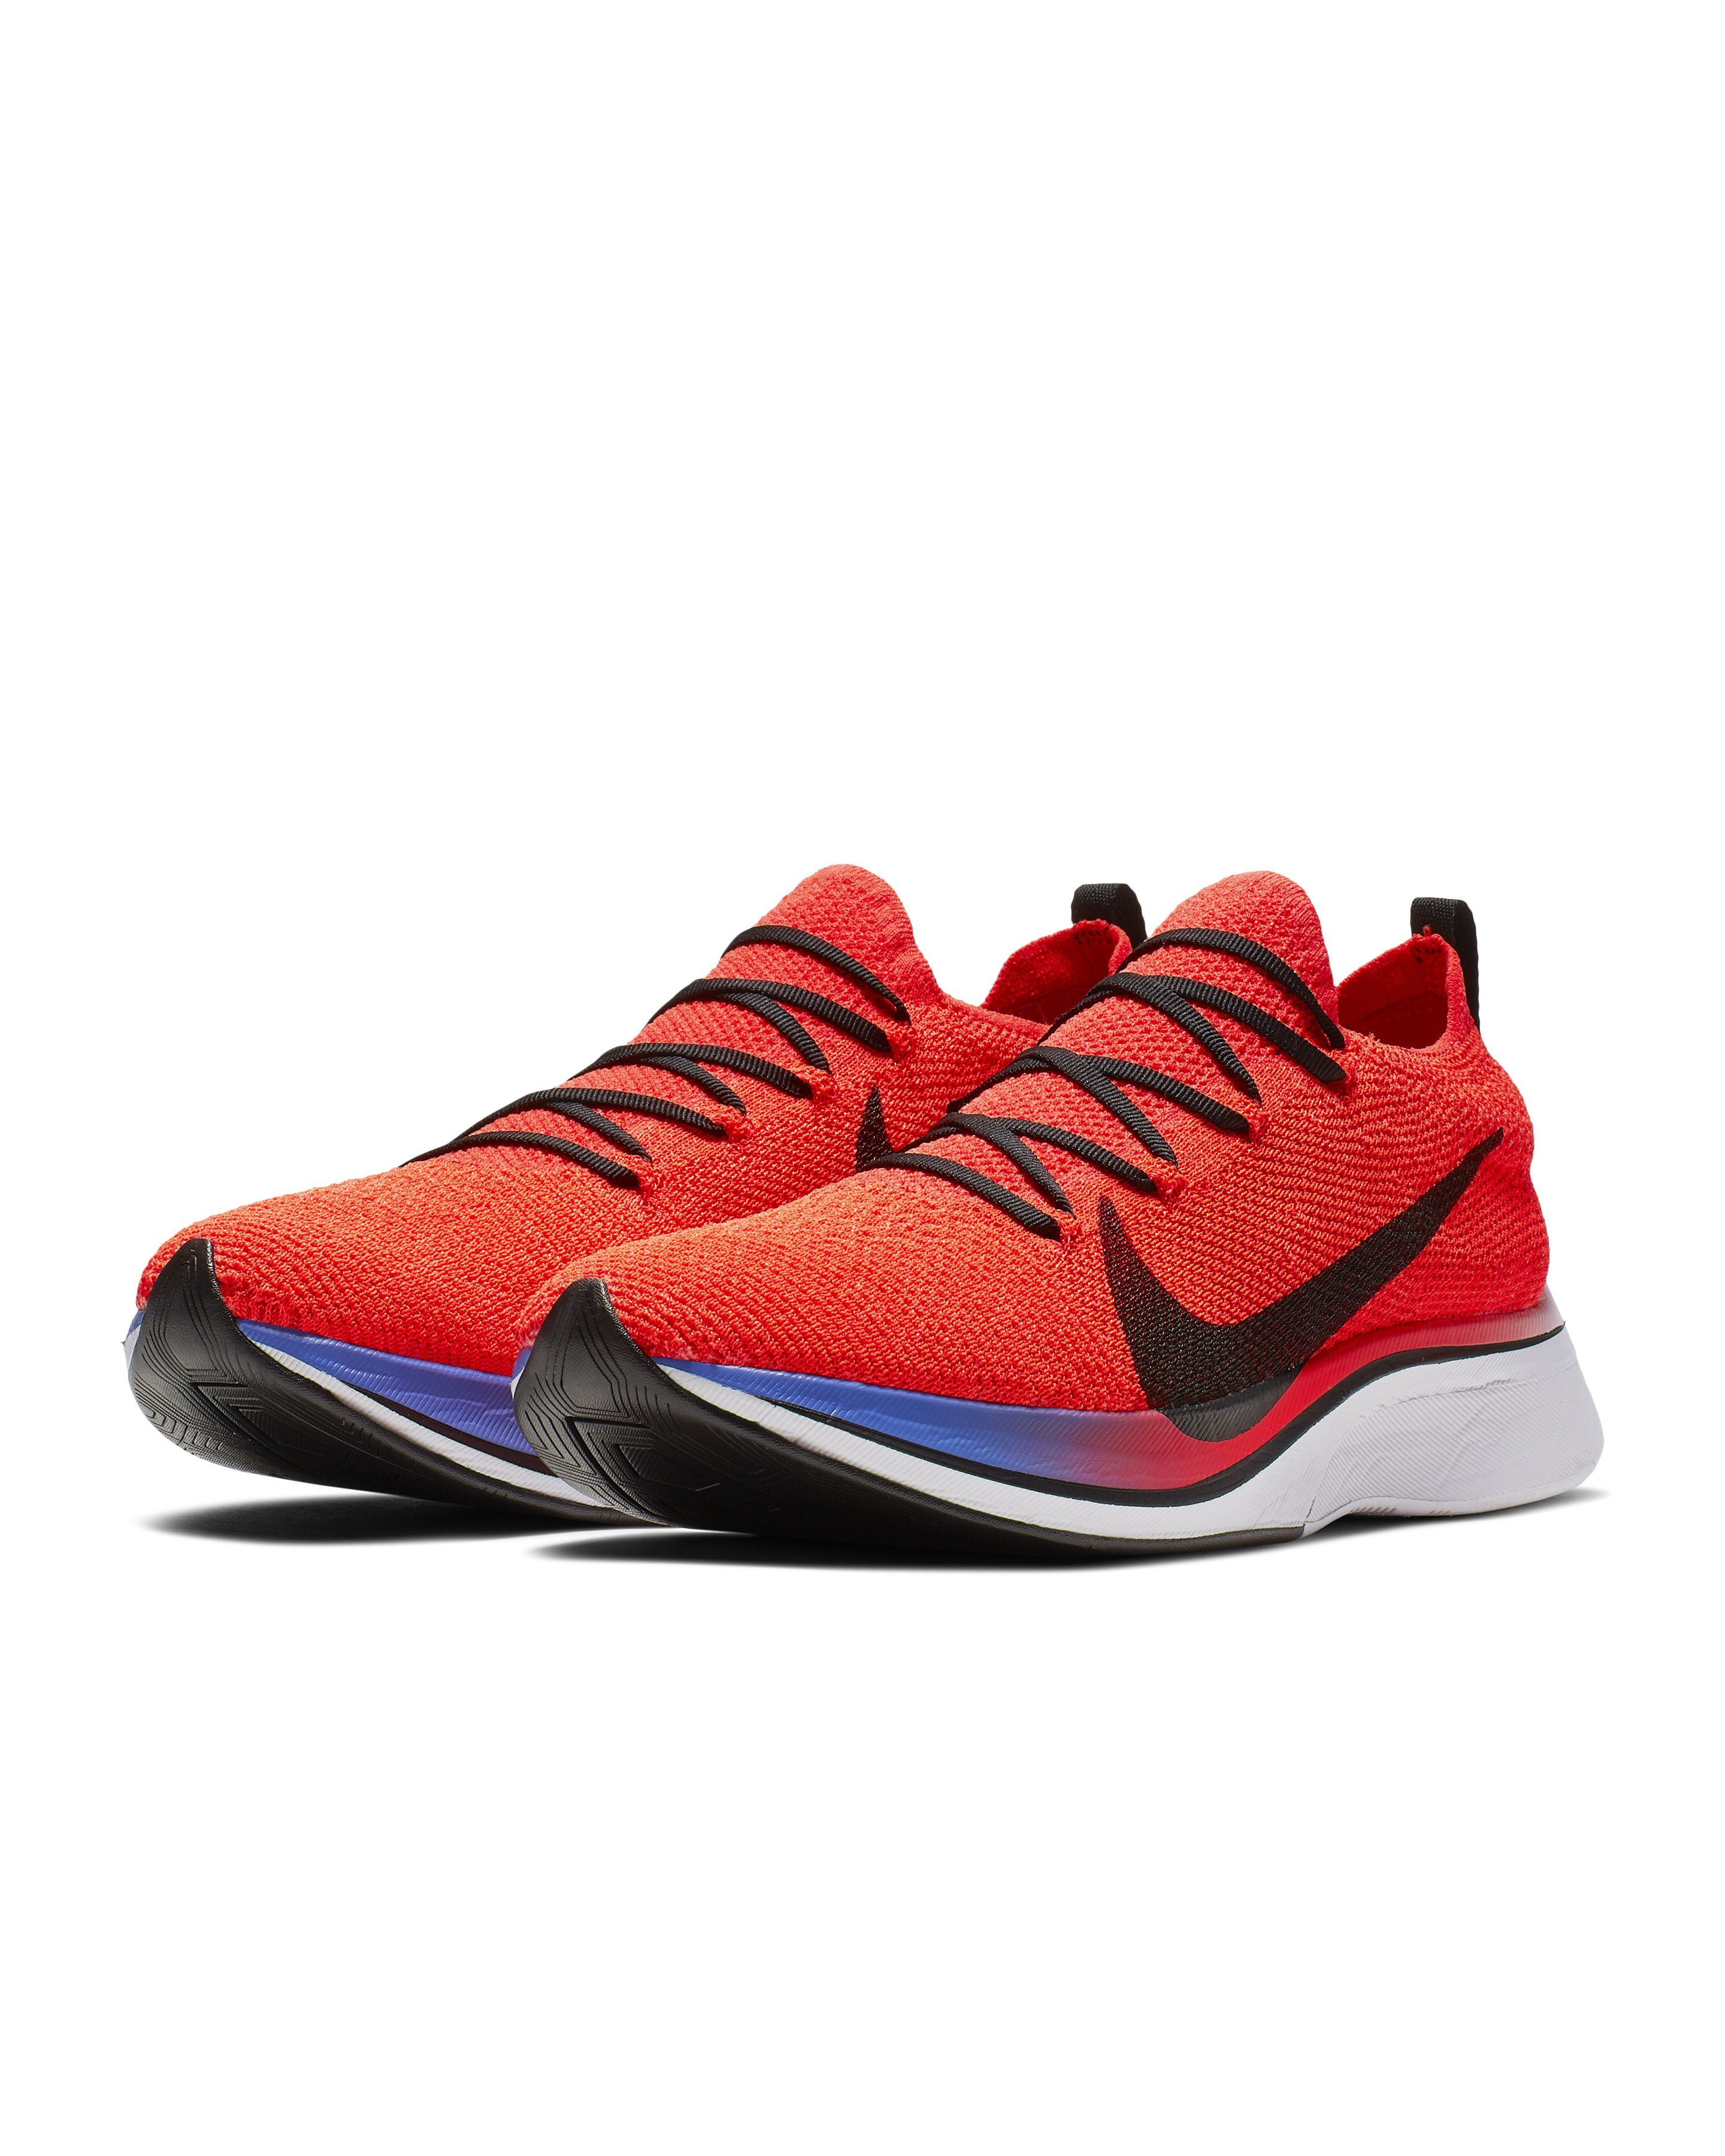 Alargar Ir a caminar dialecto  The Nike Vaporfly 4% Flyknit is On Sale Now